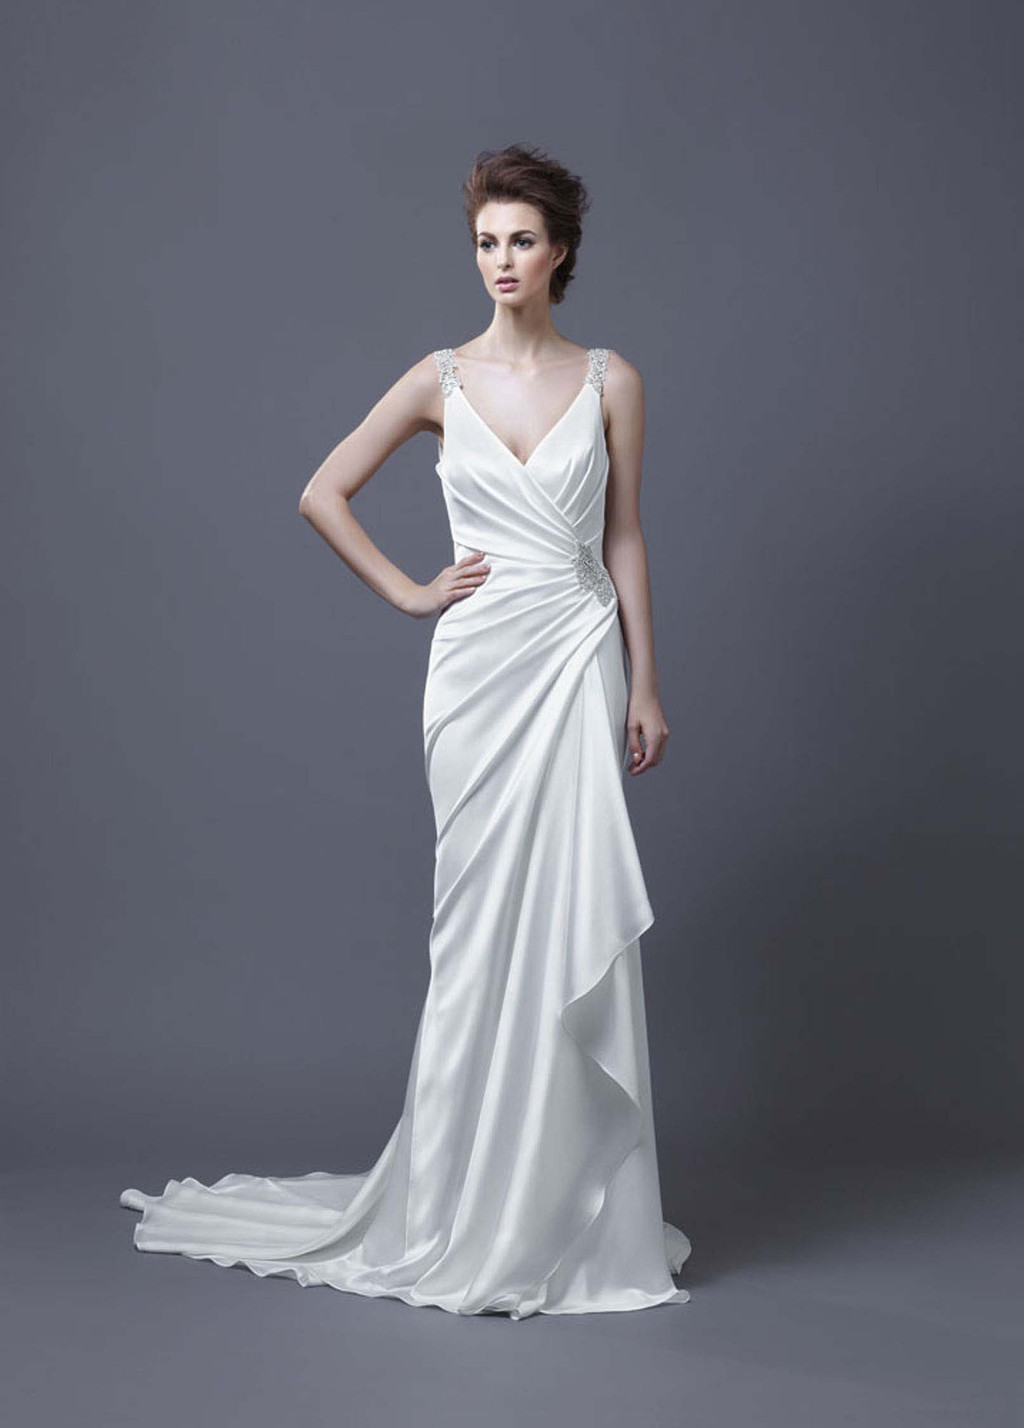 2013 Wedding Dress by Enzoani Bridal Harmony